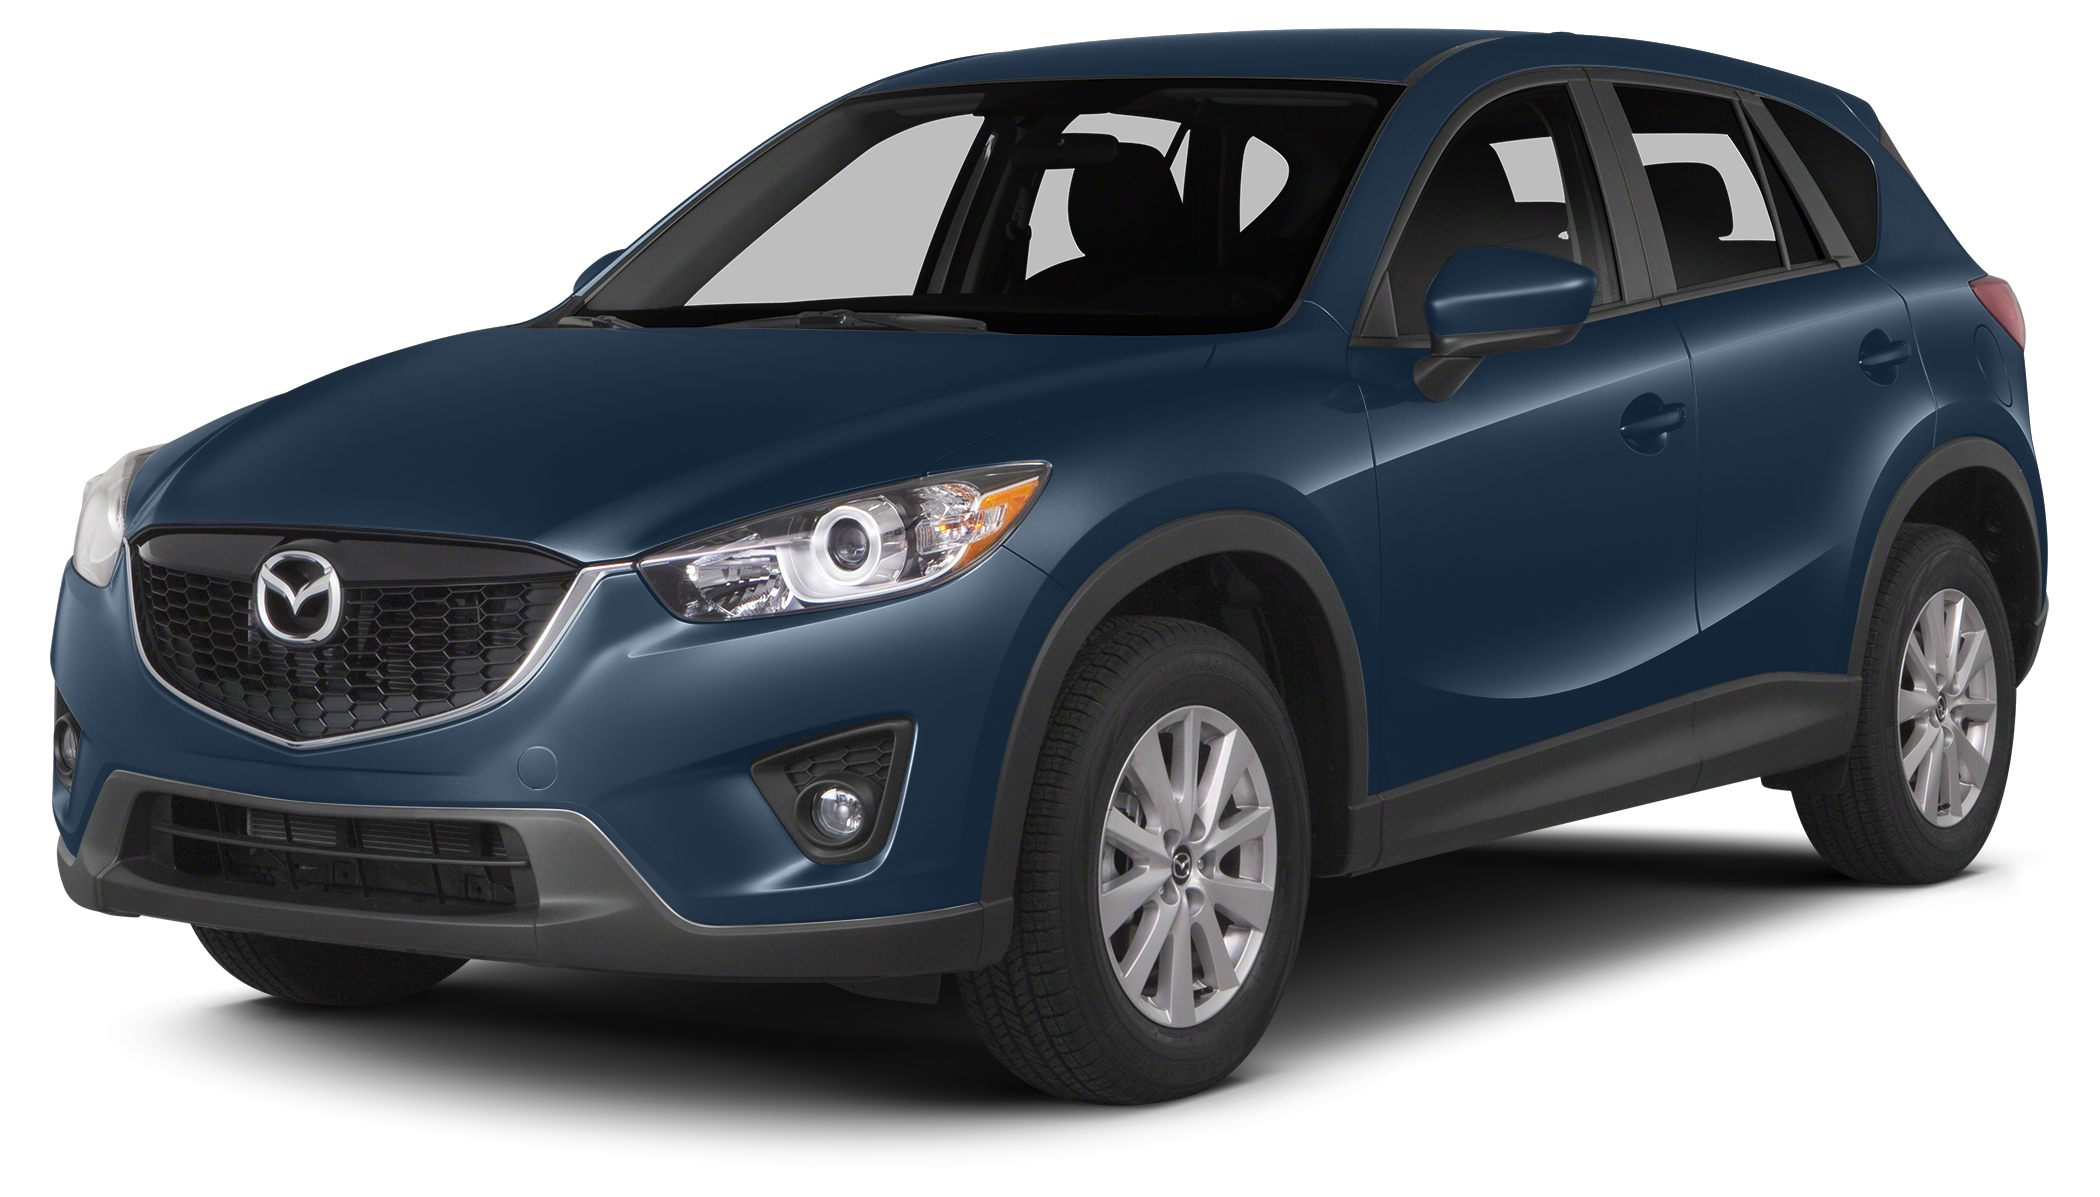 2014 Mazda CX-5 Sport WE OFFER FREE LIFETIME INSPECTION Miles 58744Color Blue Reflex Mica Stoc